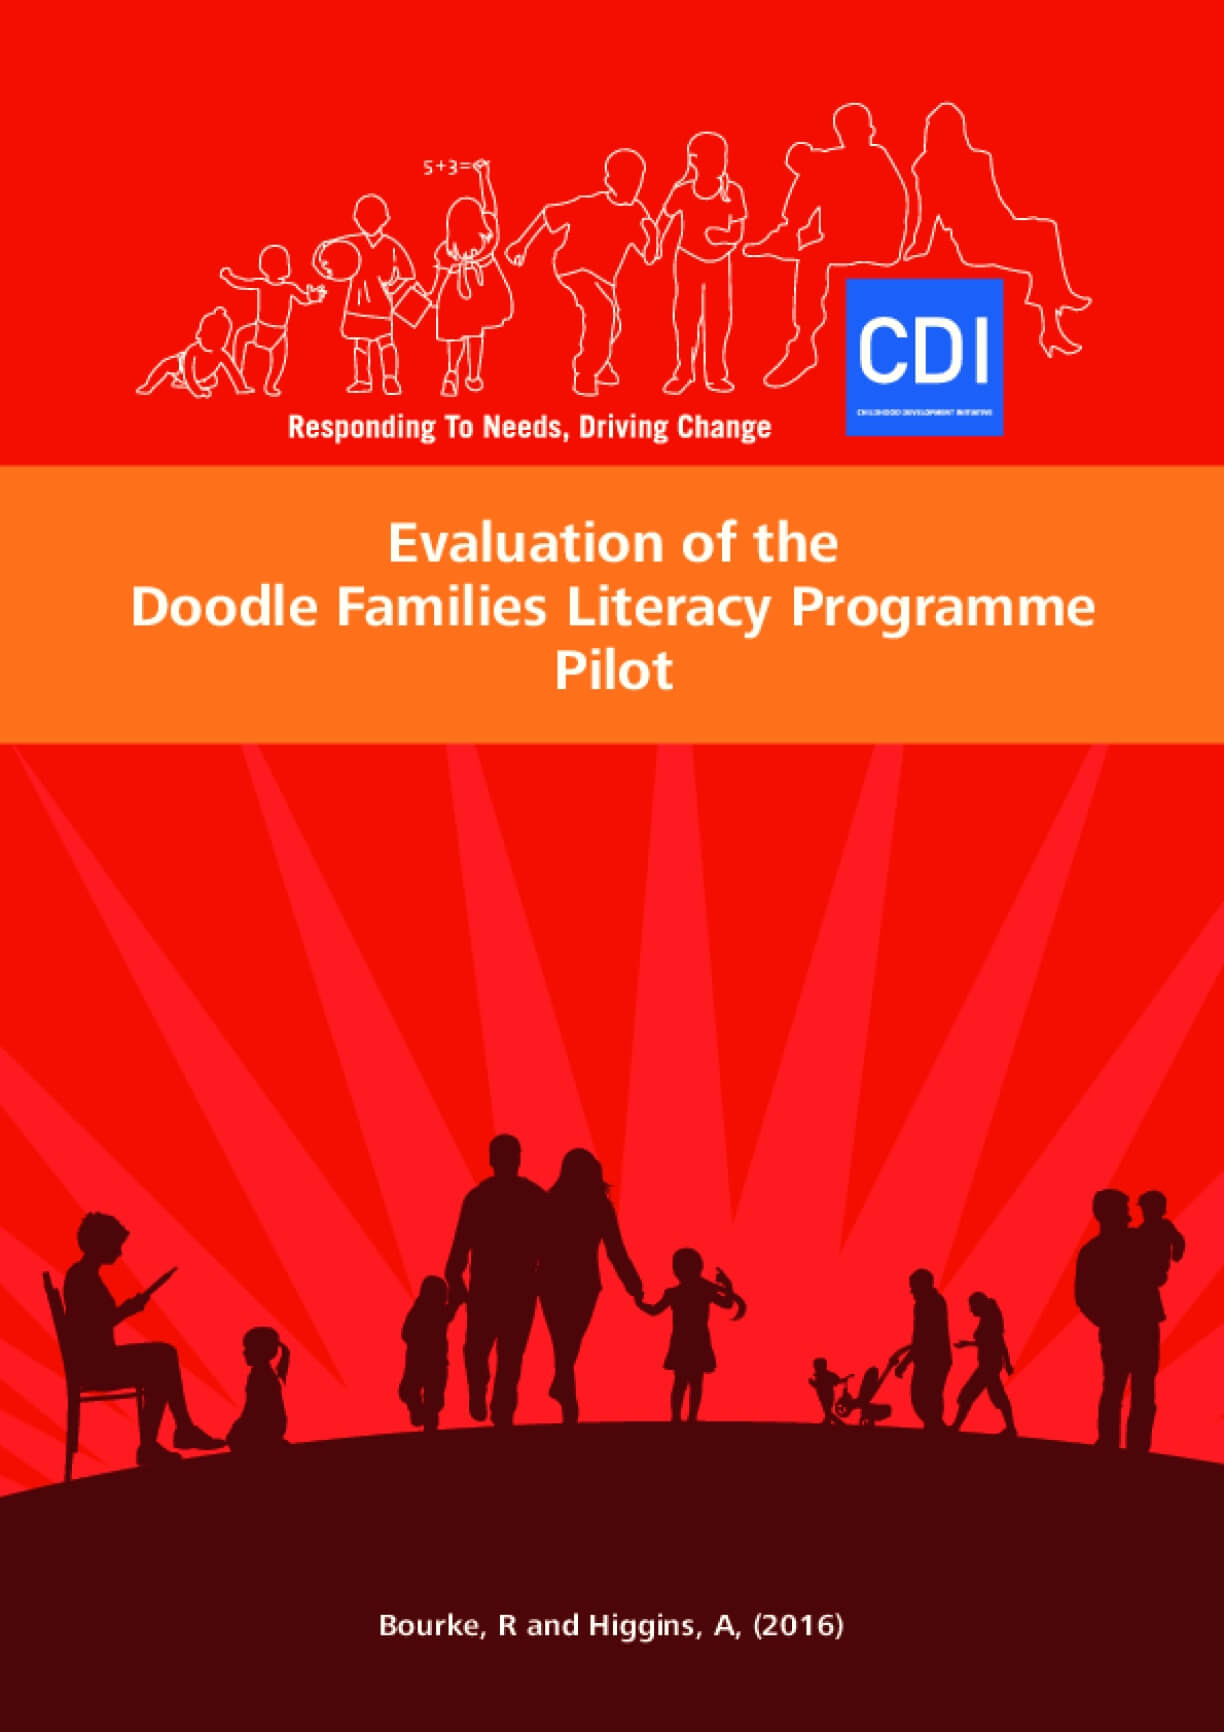 Evaluation of the Doodle Families Literacy Programme Pilot